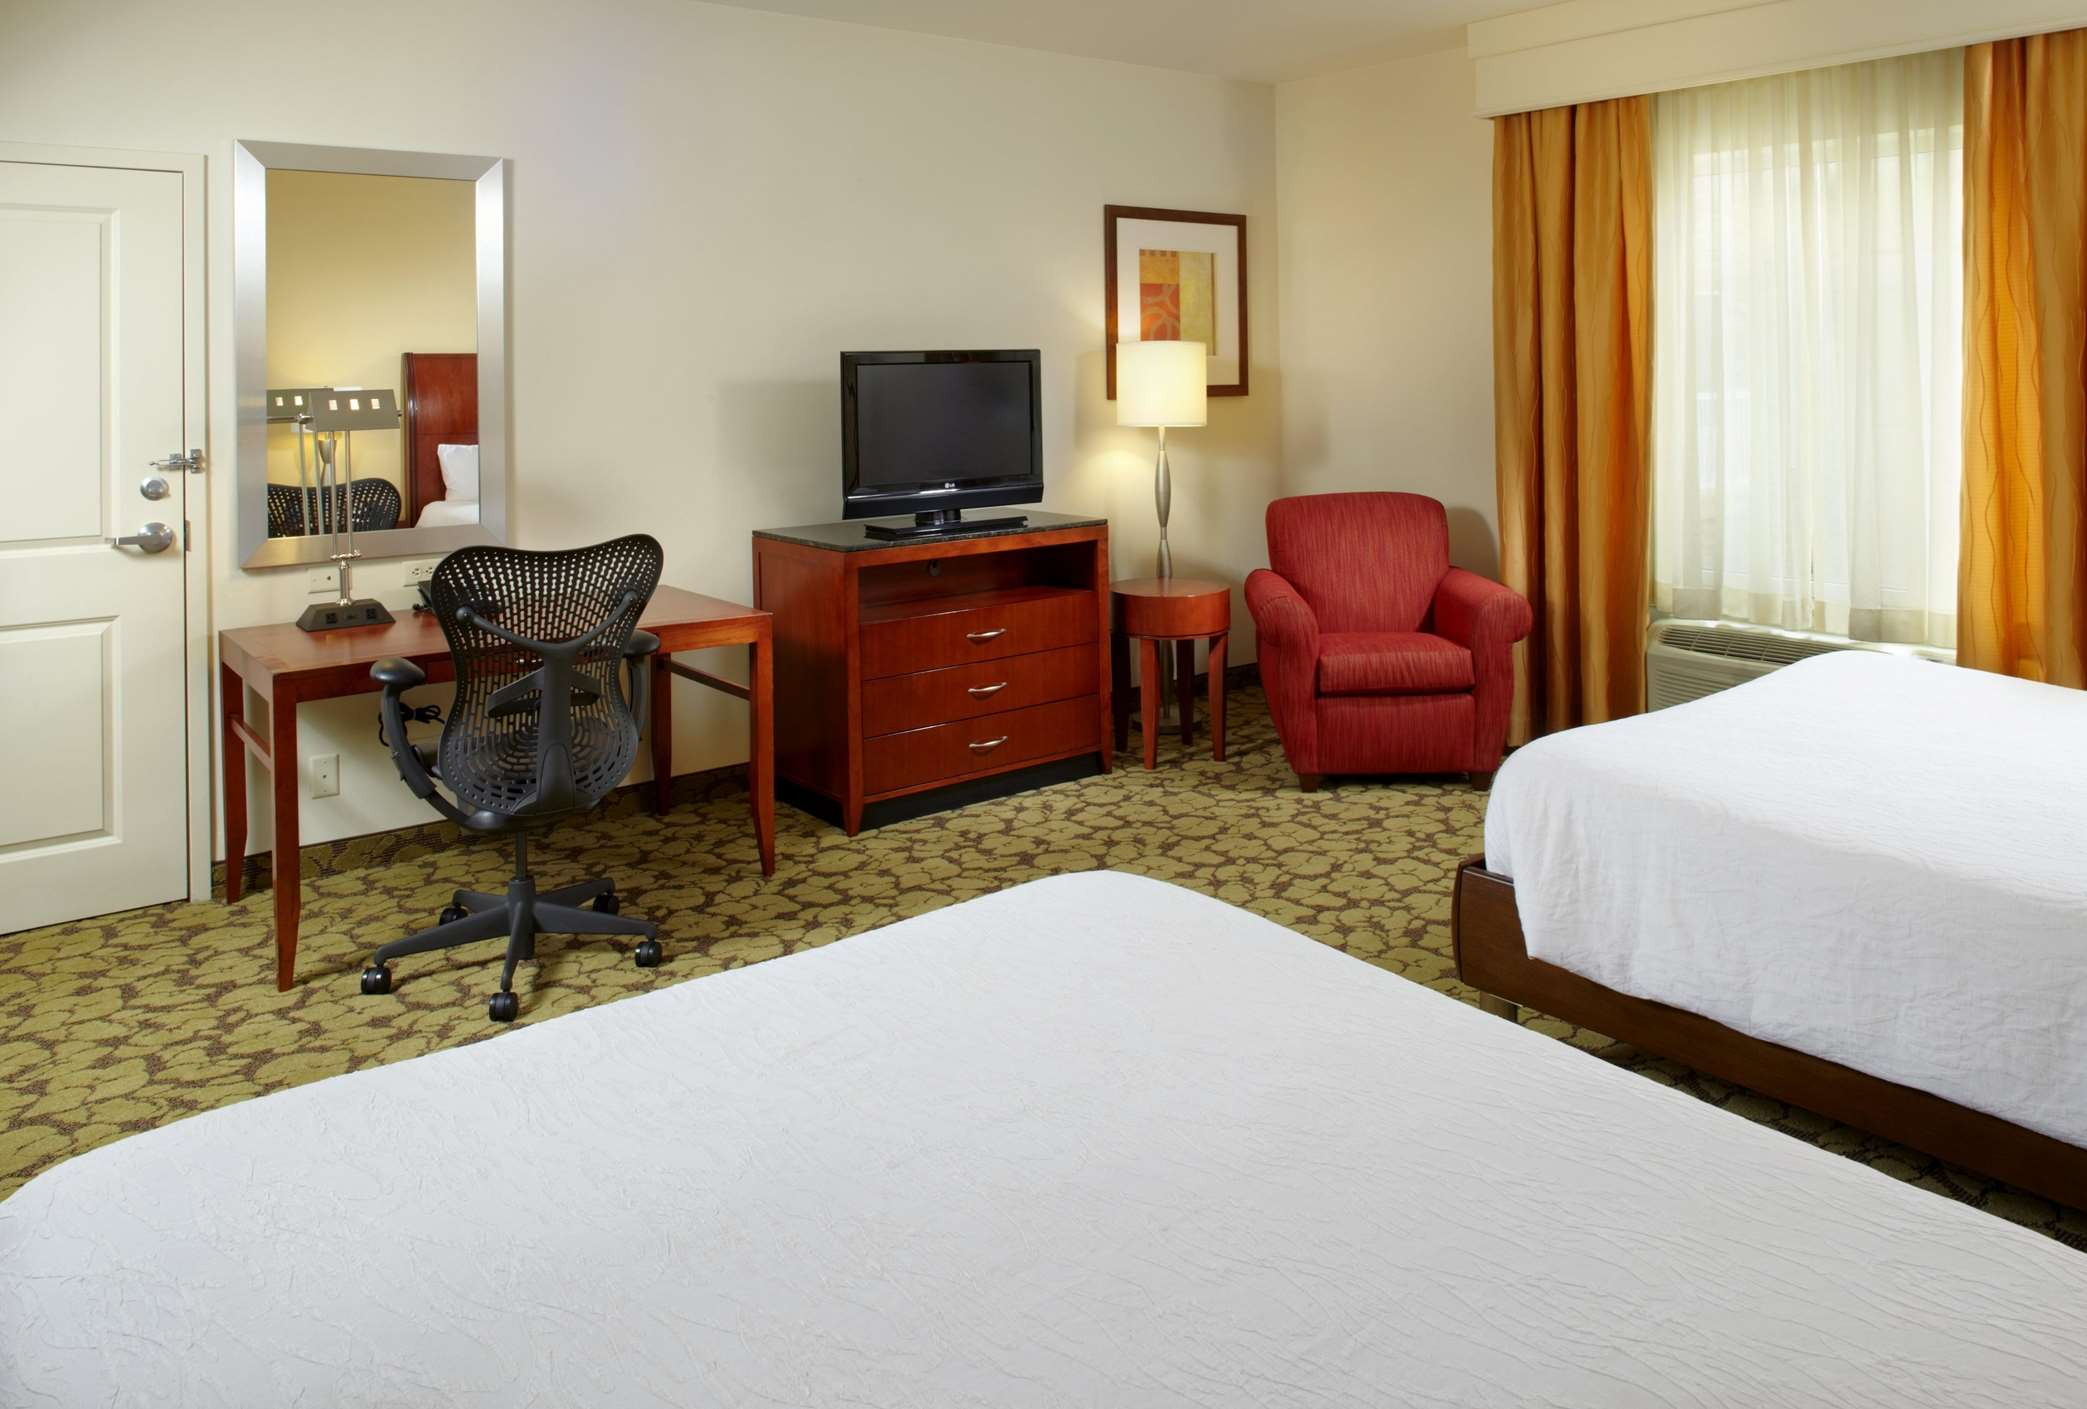 Hilton Garden Inn Dallas/Arlington image 23